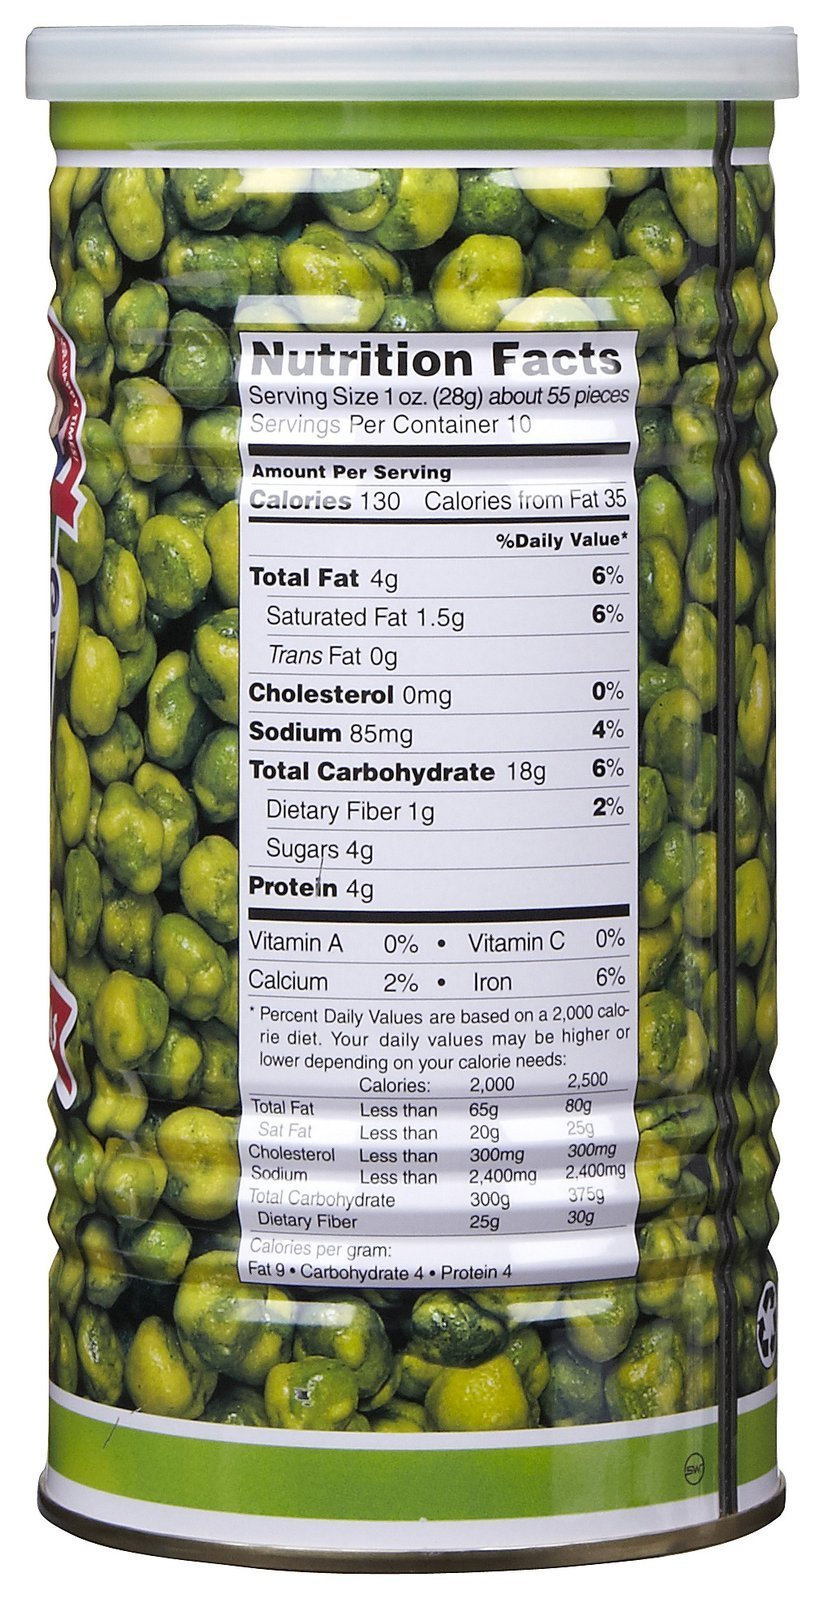 Hapi Hapi Hot Wasabi Peas, Tins, 9.9 oz by HAPI (Image #2)